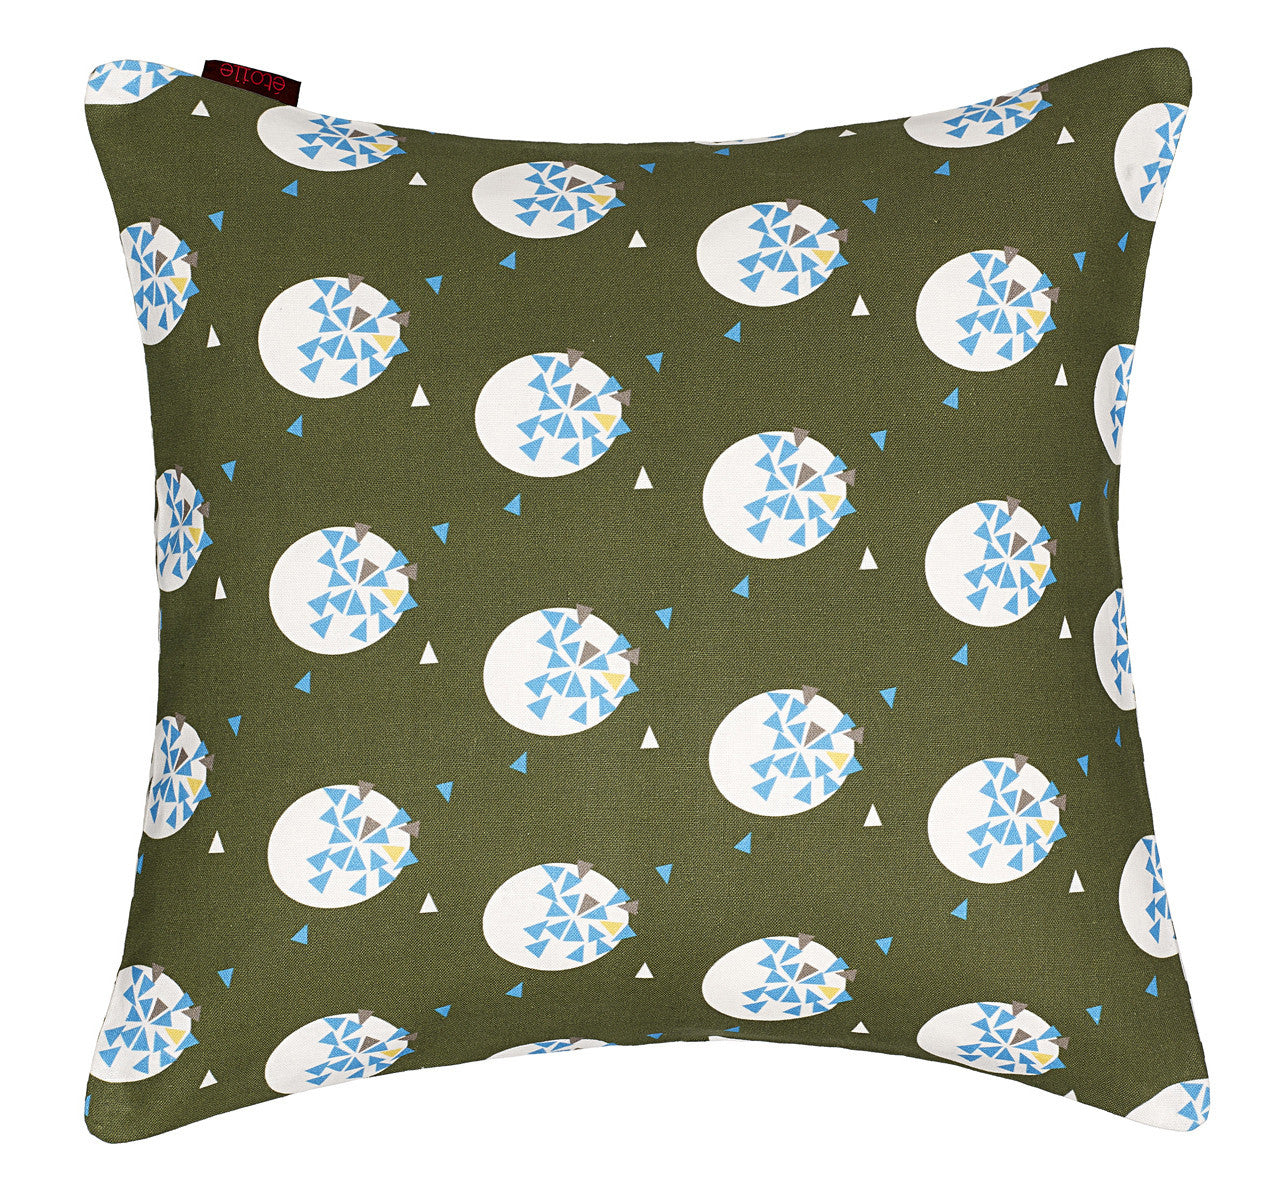 Ceramic Geometric Pattern Cotton Linen Cushion on Olive Green